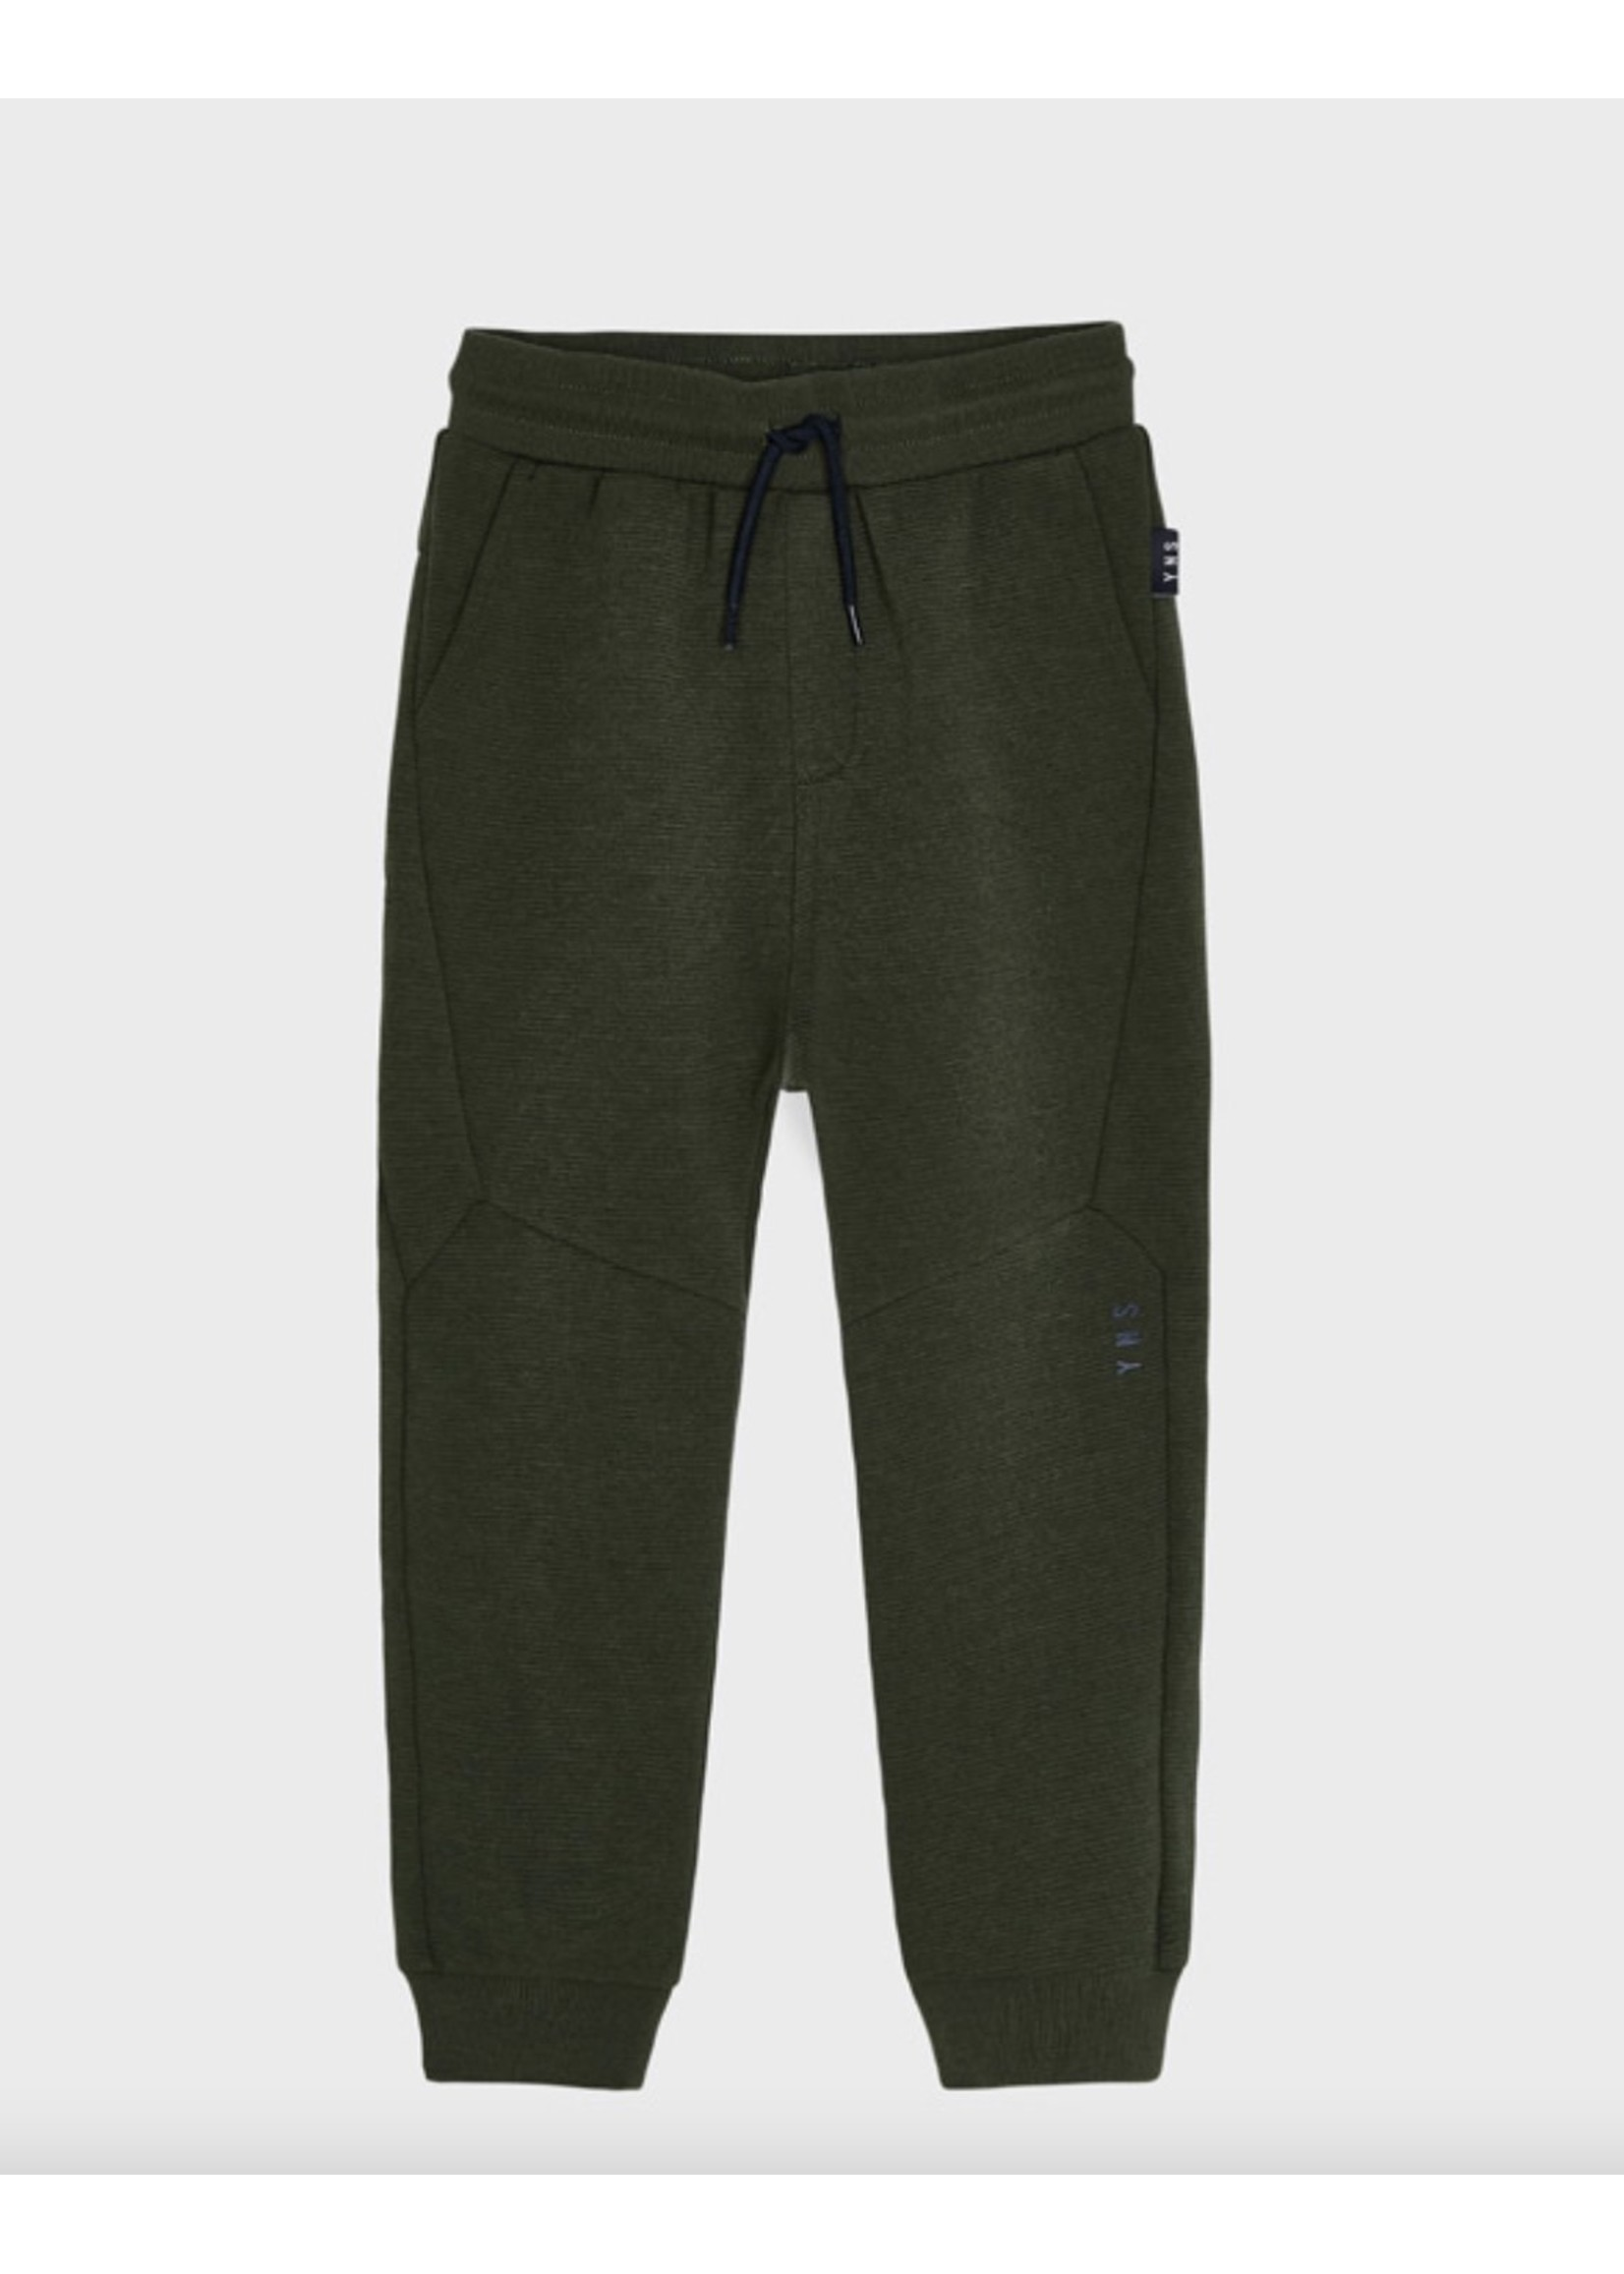 Mayoral Mayoral, Ottoman Knit Pants in Dill